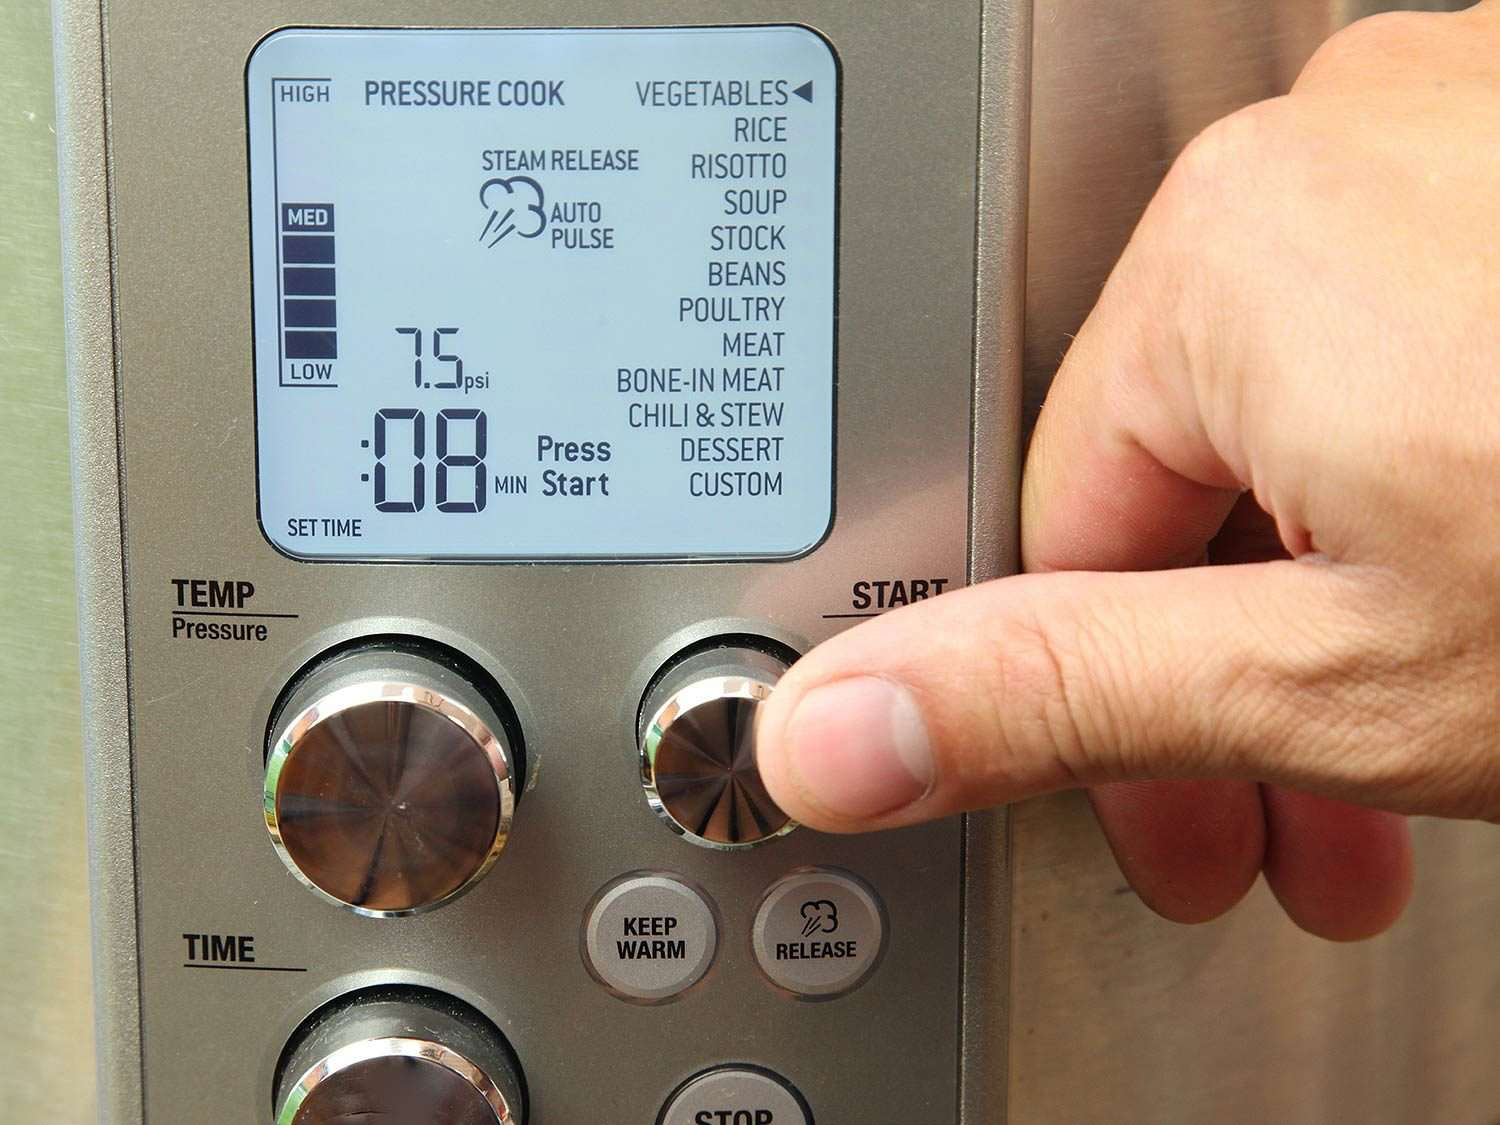 Control panel of the Breville Fast Slow Pro multi-cooker